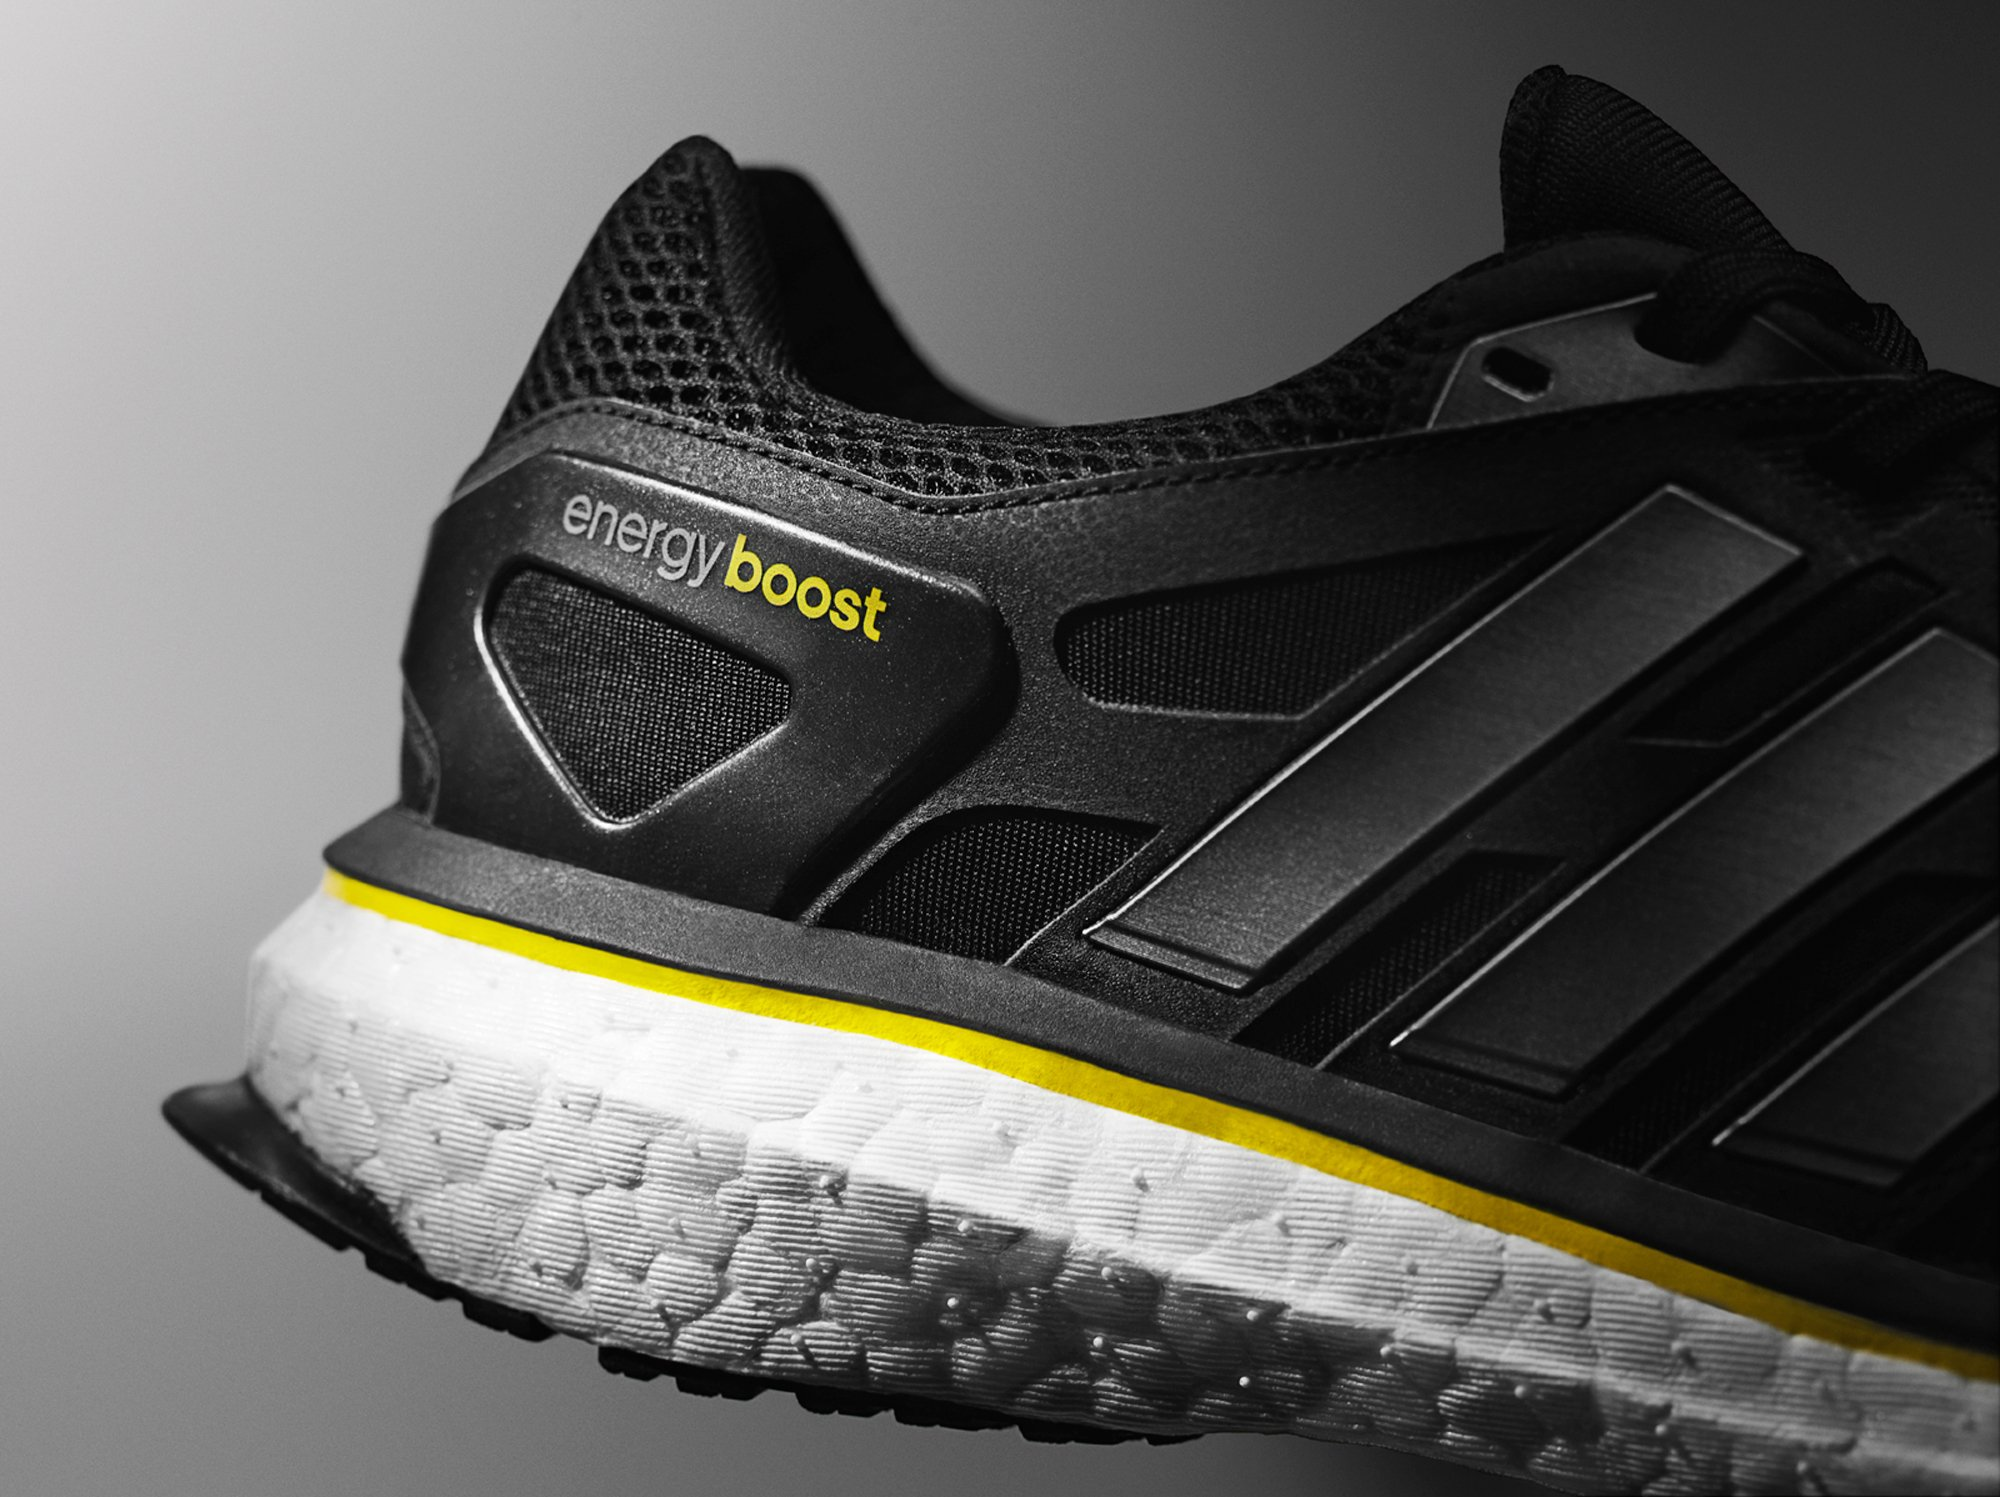 Adidas Boost Technology Video